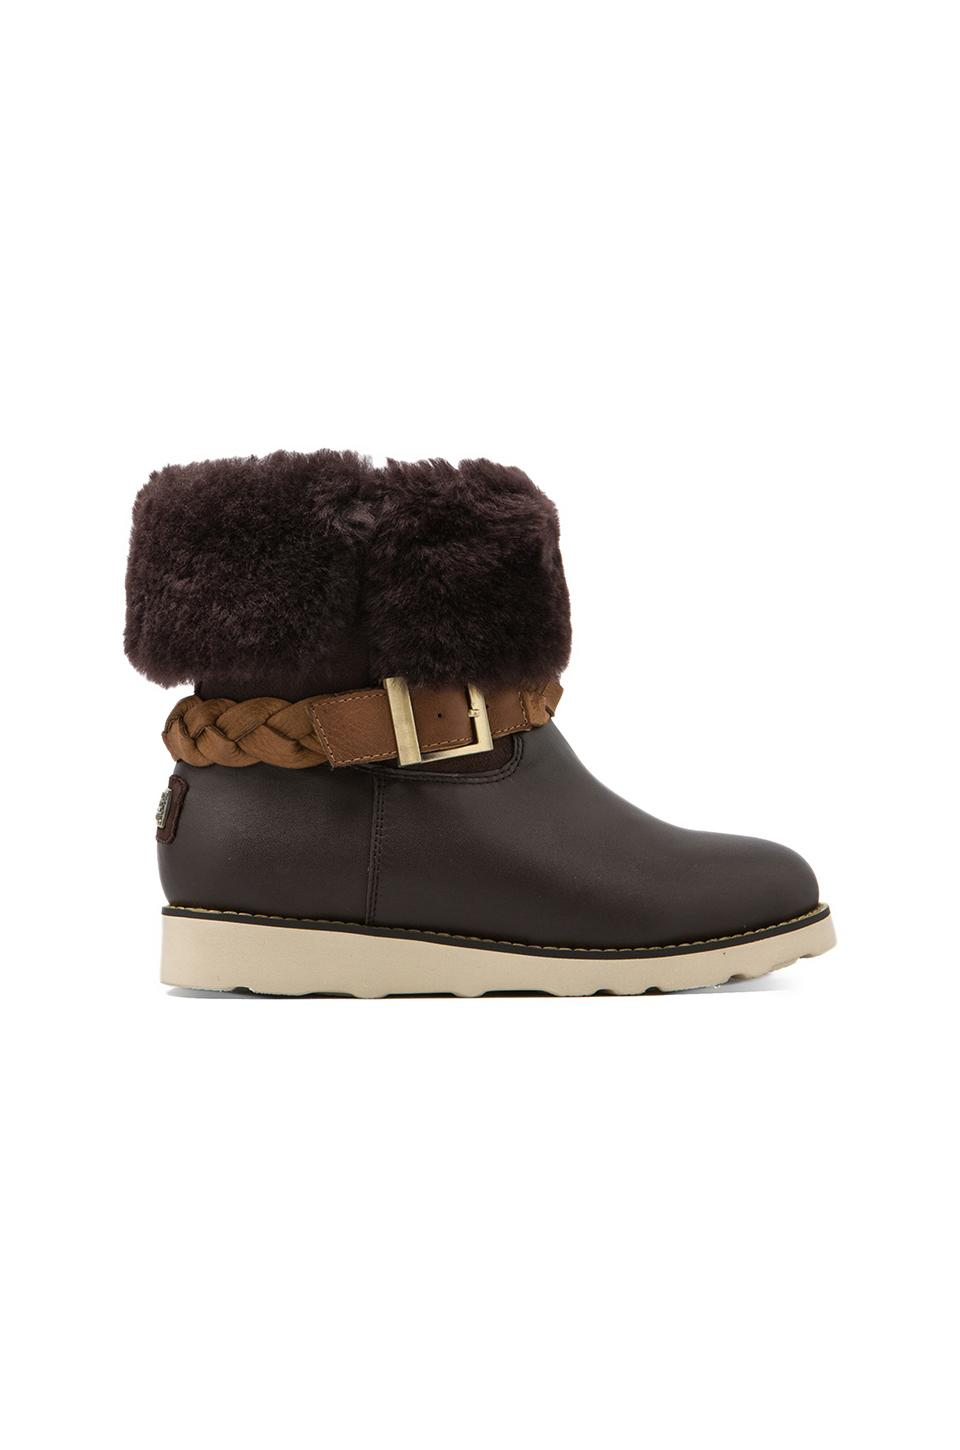 Australia Luxe Collective Yvent Boot with Sheepskin in Beva